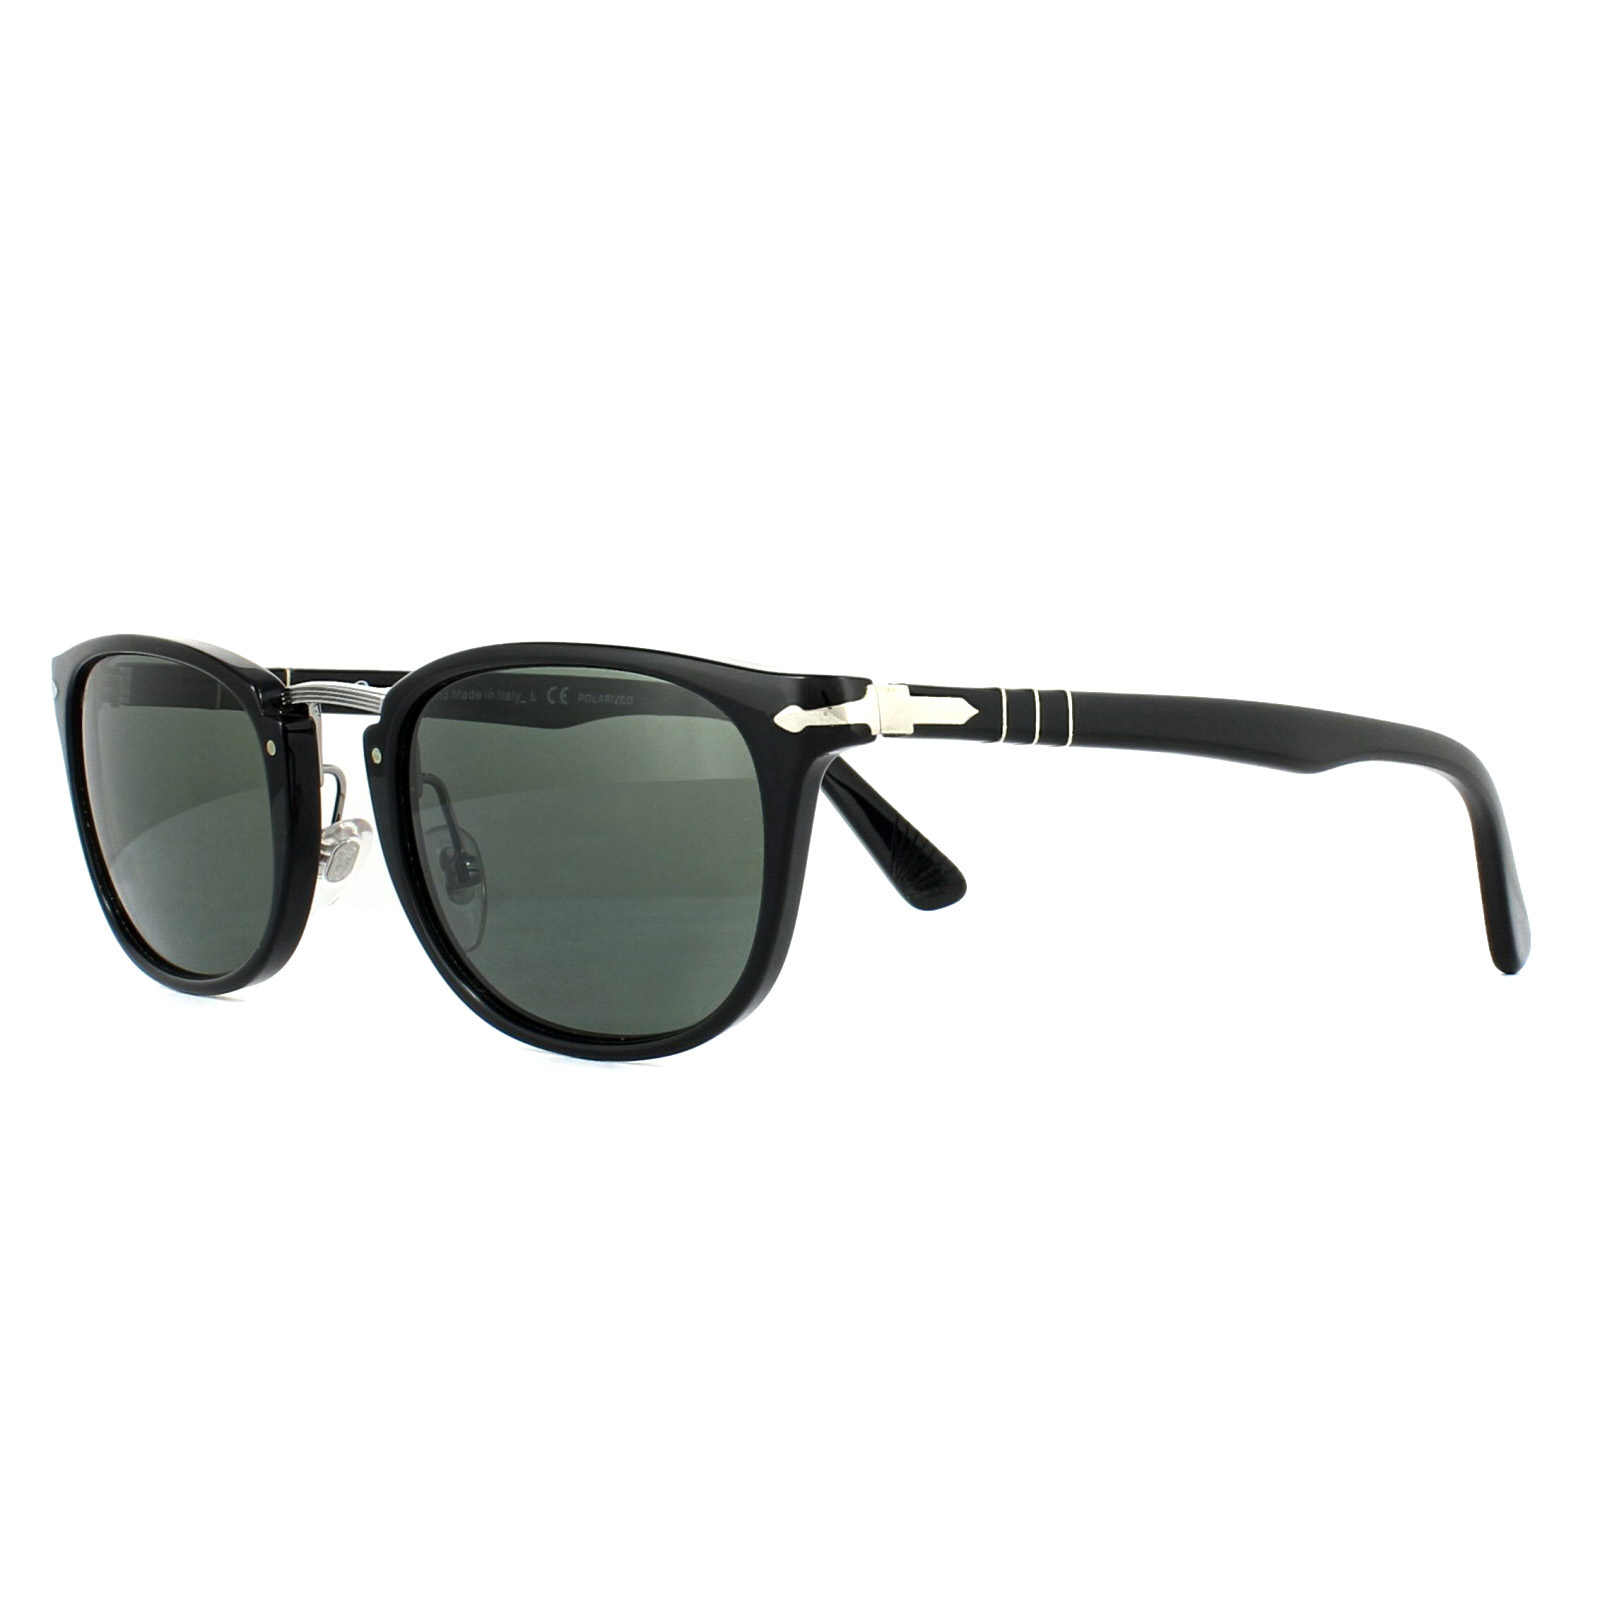 c86d56fd8ea14 Persol Sunglasses 3127S 95 58 Black Green Polarized 8053672472752